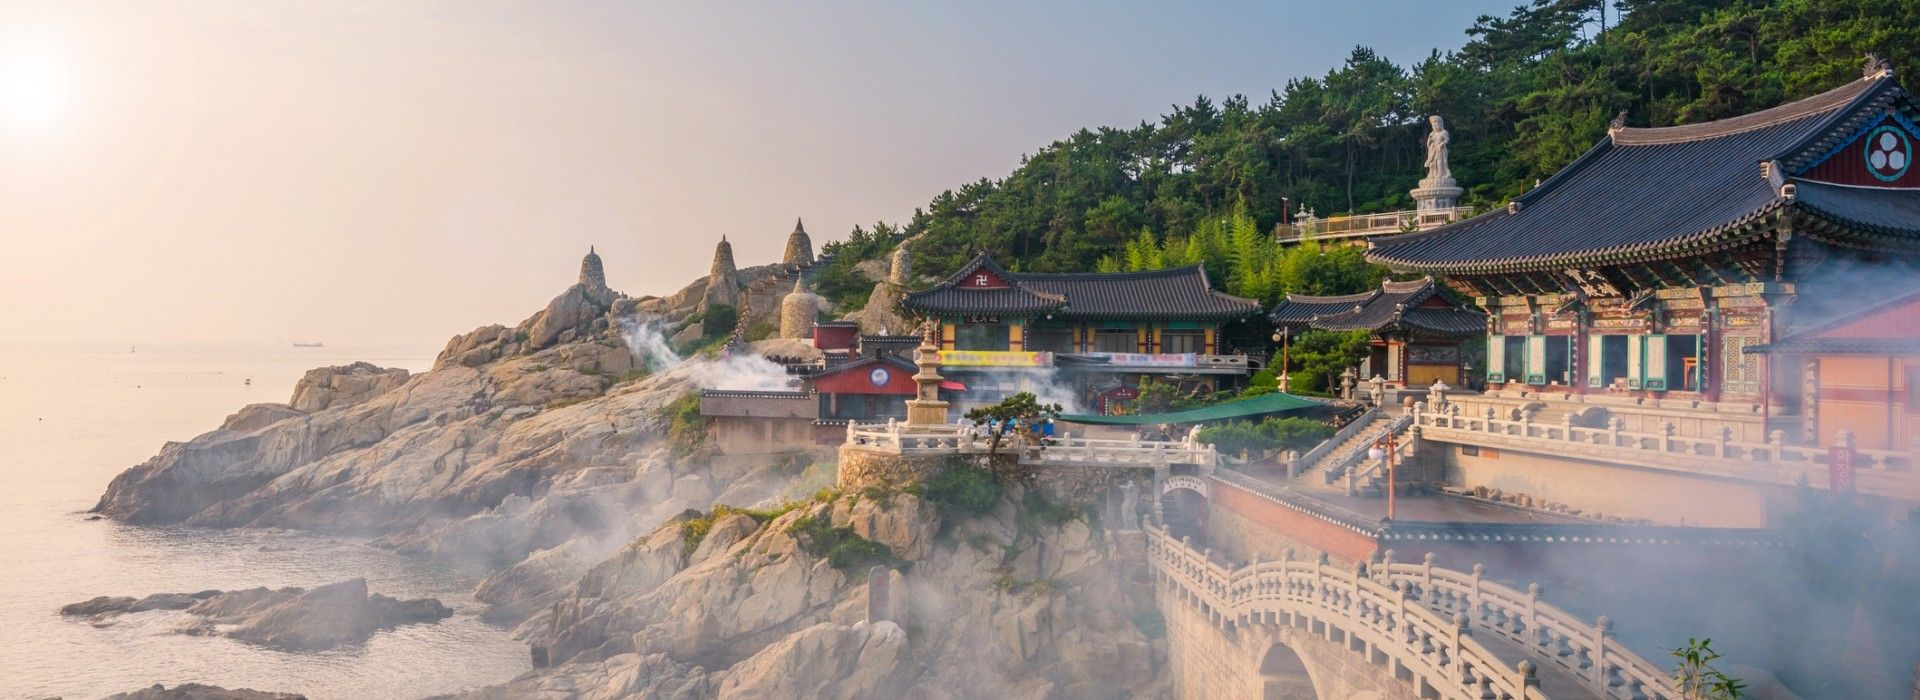 Cultural, religious and historic sites Tours in Boseong County